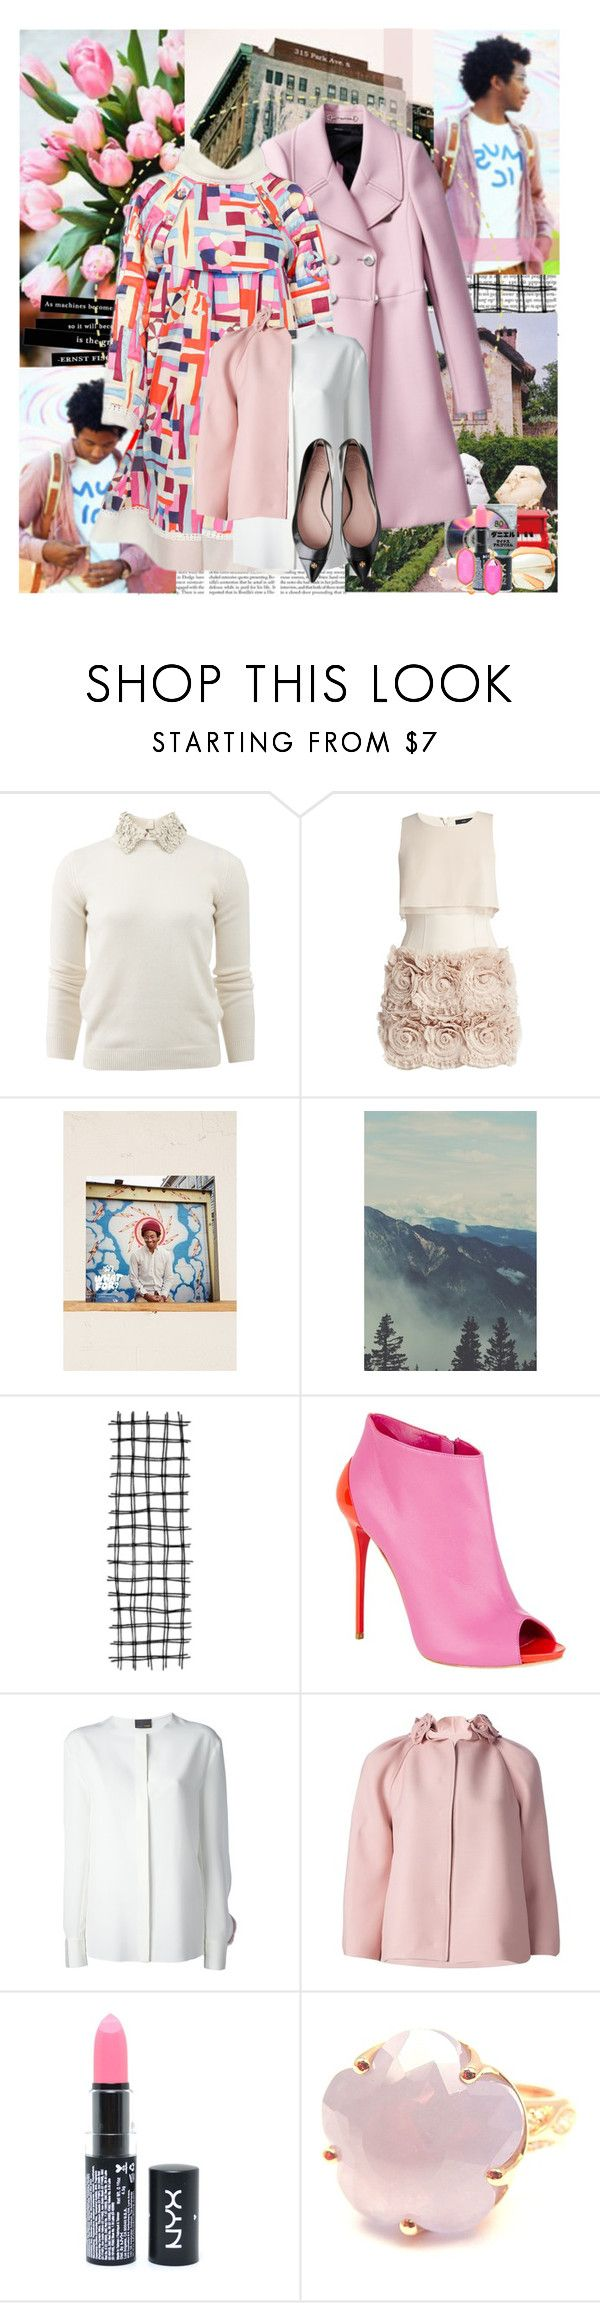 """""""Musicians: Toro y Moi"""" by katieci ❤ liked on Polyvore featuring Edition, Valentino, BCBGMAXAZRIA, Urban Outfitters, Alexander McQueen, Chanel, Fendi, Givenchy, NYX and Pasquale Bruni"""